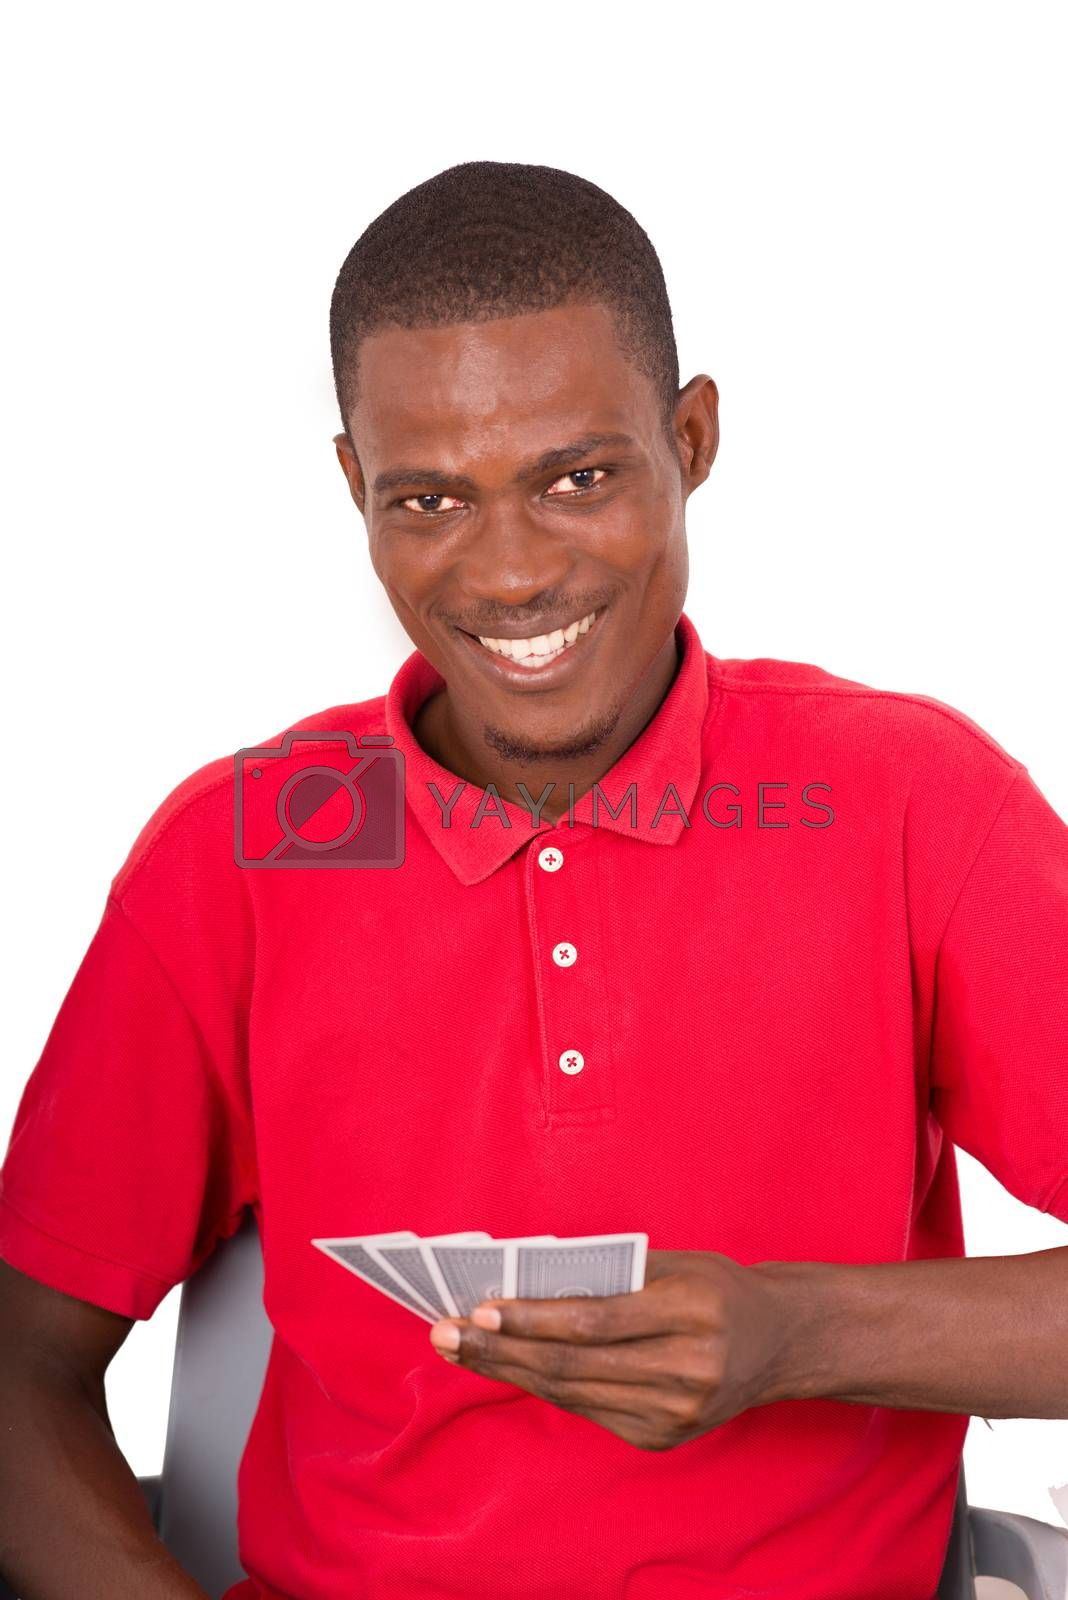 confident man holding cards looking at the camera. Studio shot on white background. Happy emotions